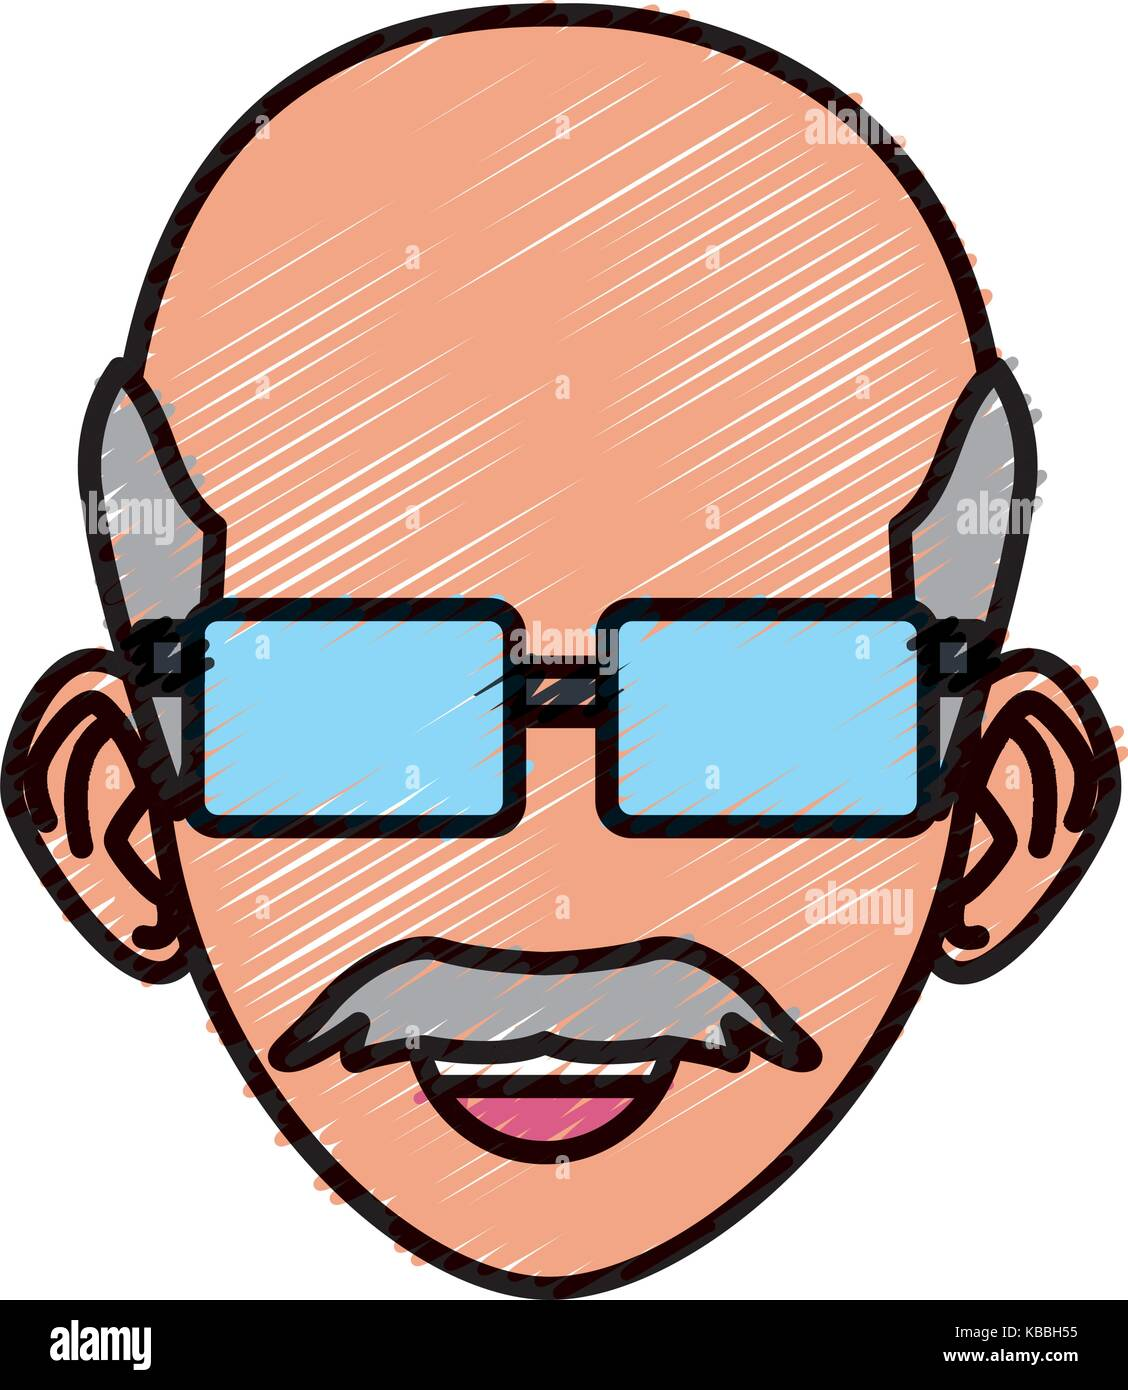 Old Man With Sunglasses Cartoon Stock Vector Image Art Alamy